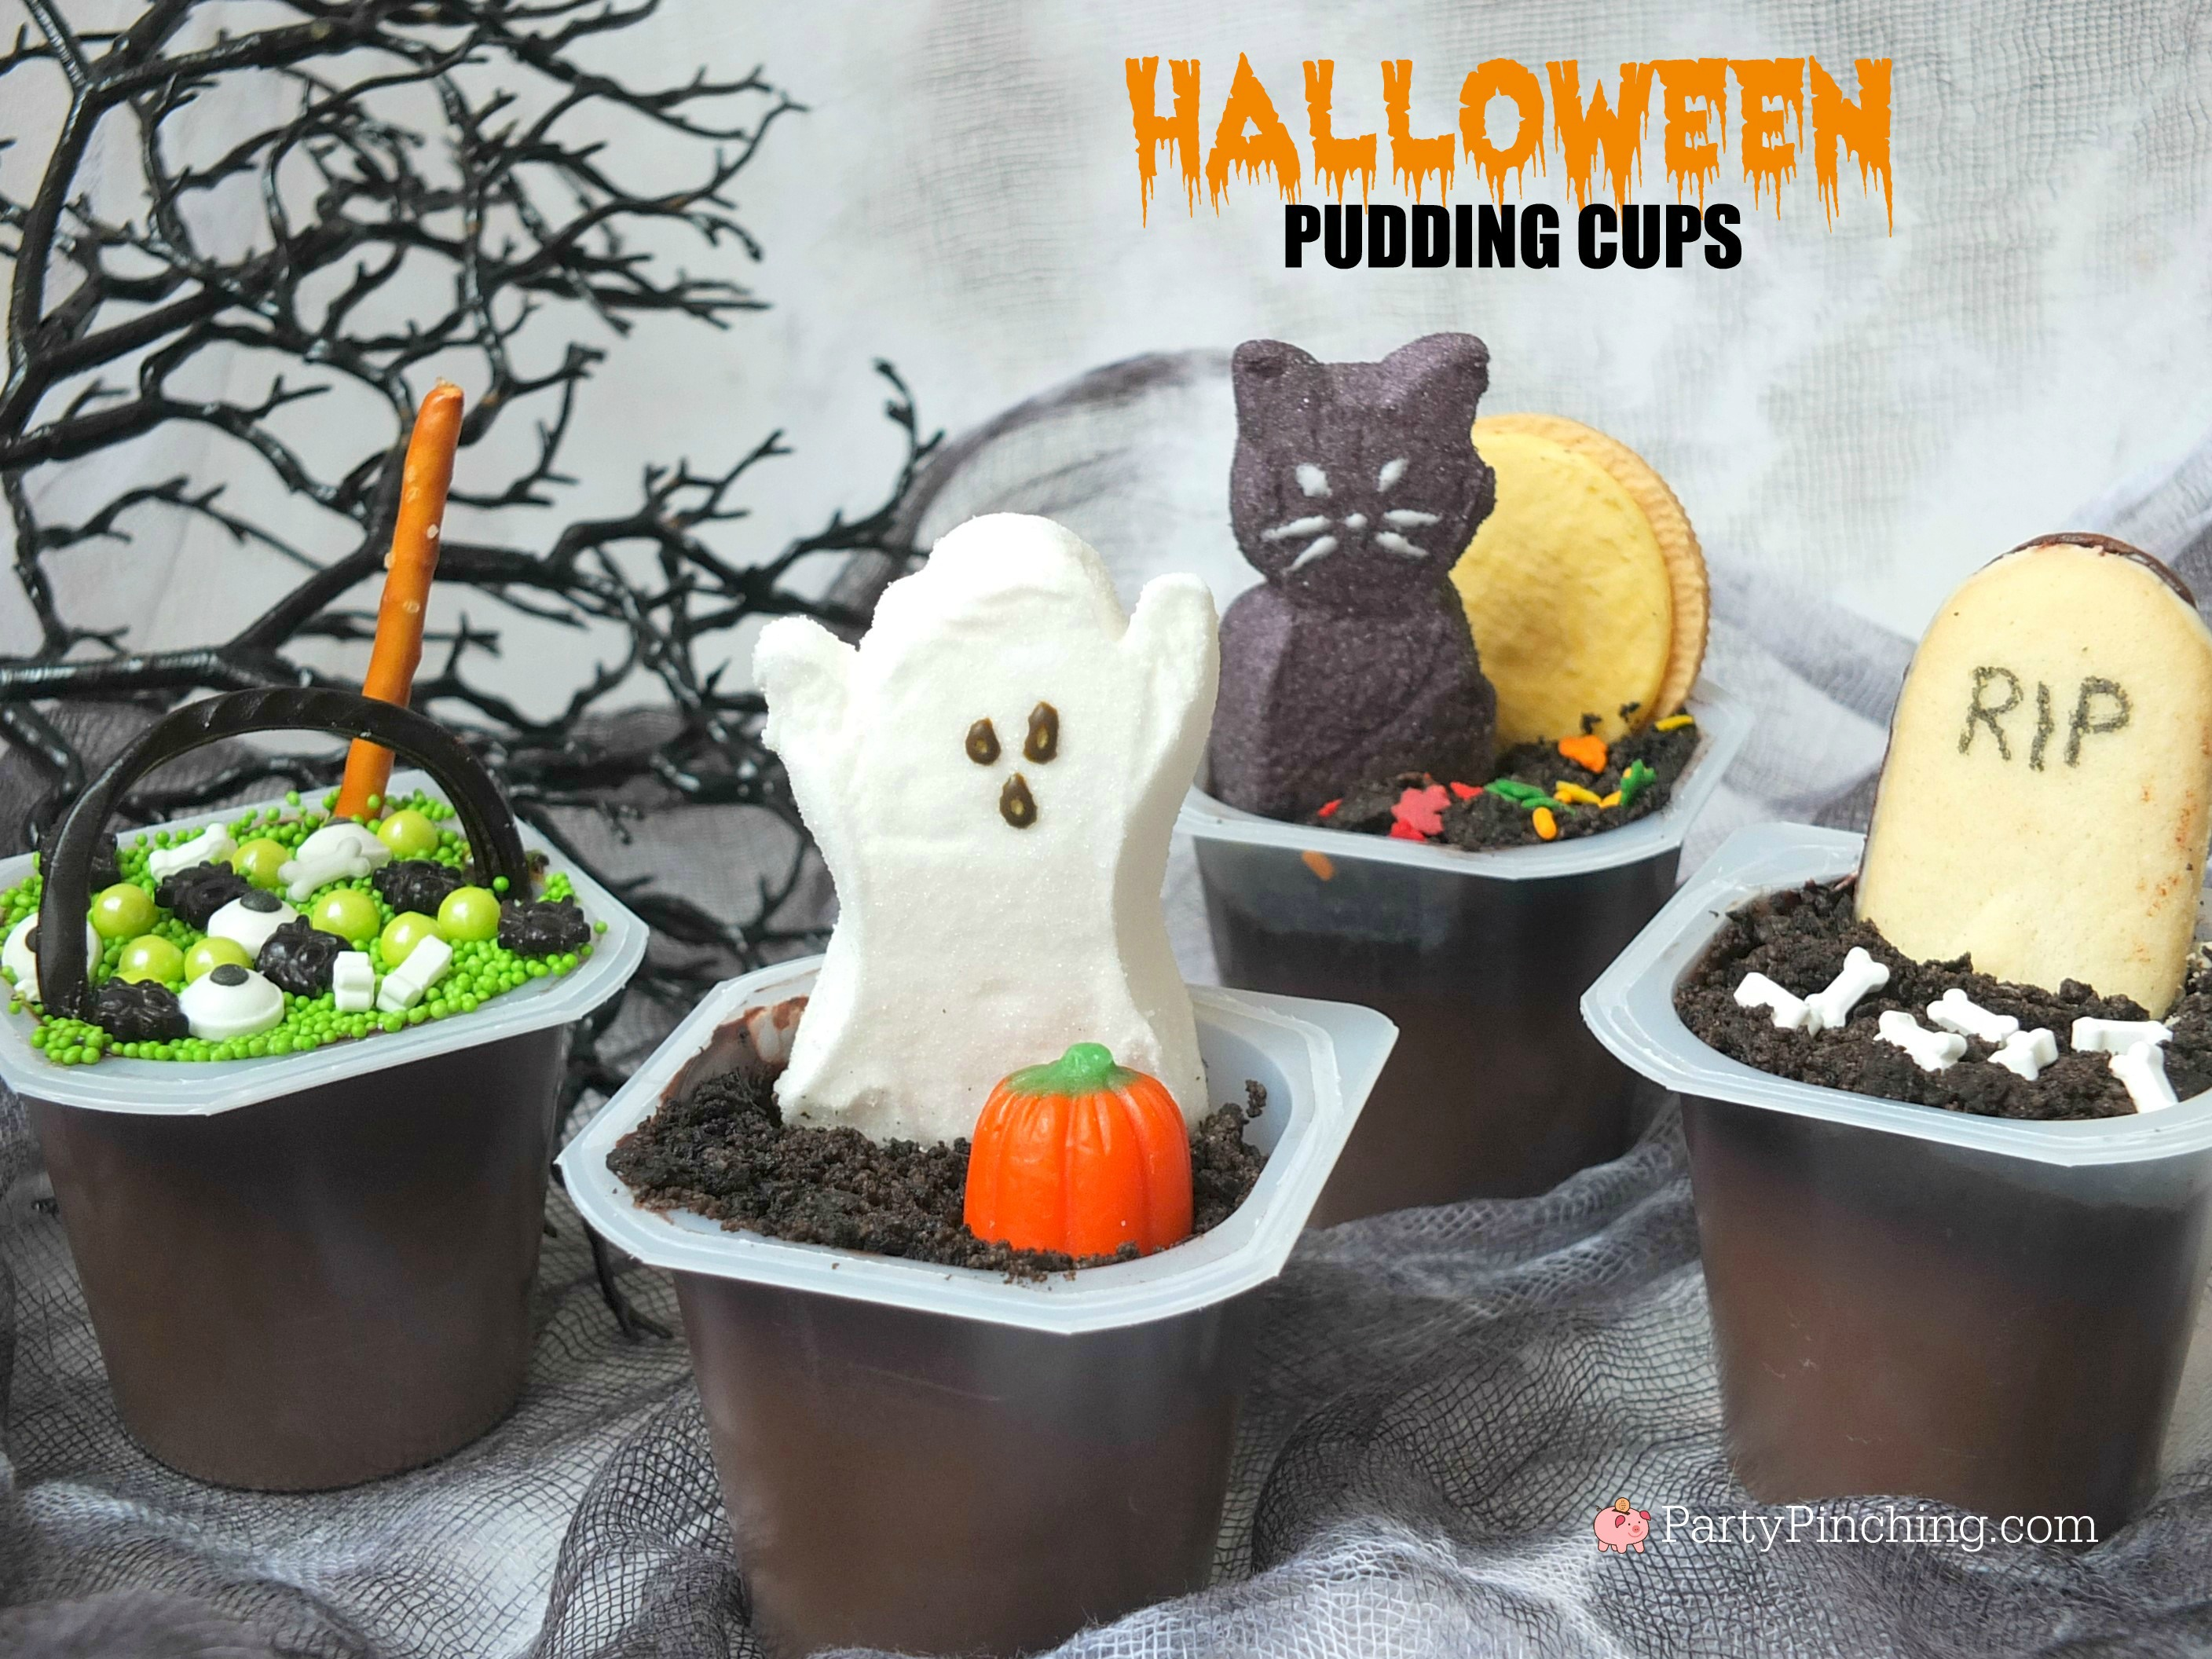 halloween pudding cups easy to make halloween treats for kids dessert ideas for halloween - Pudding Halloween Desserts